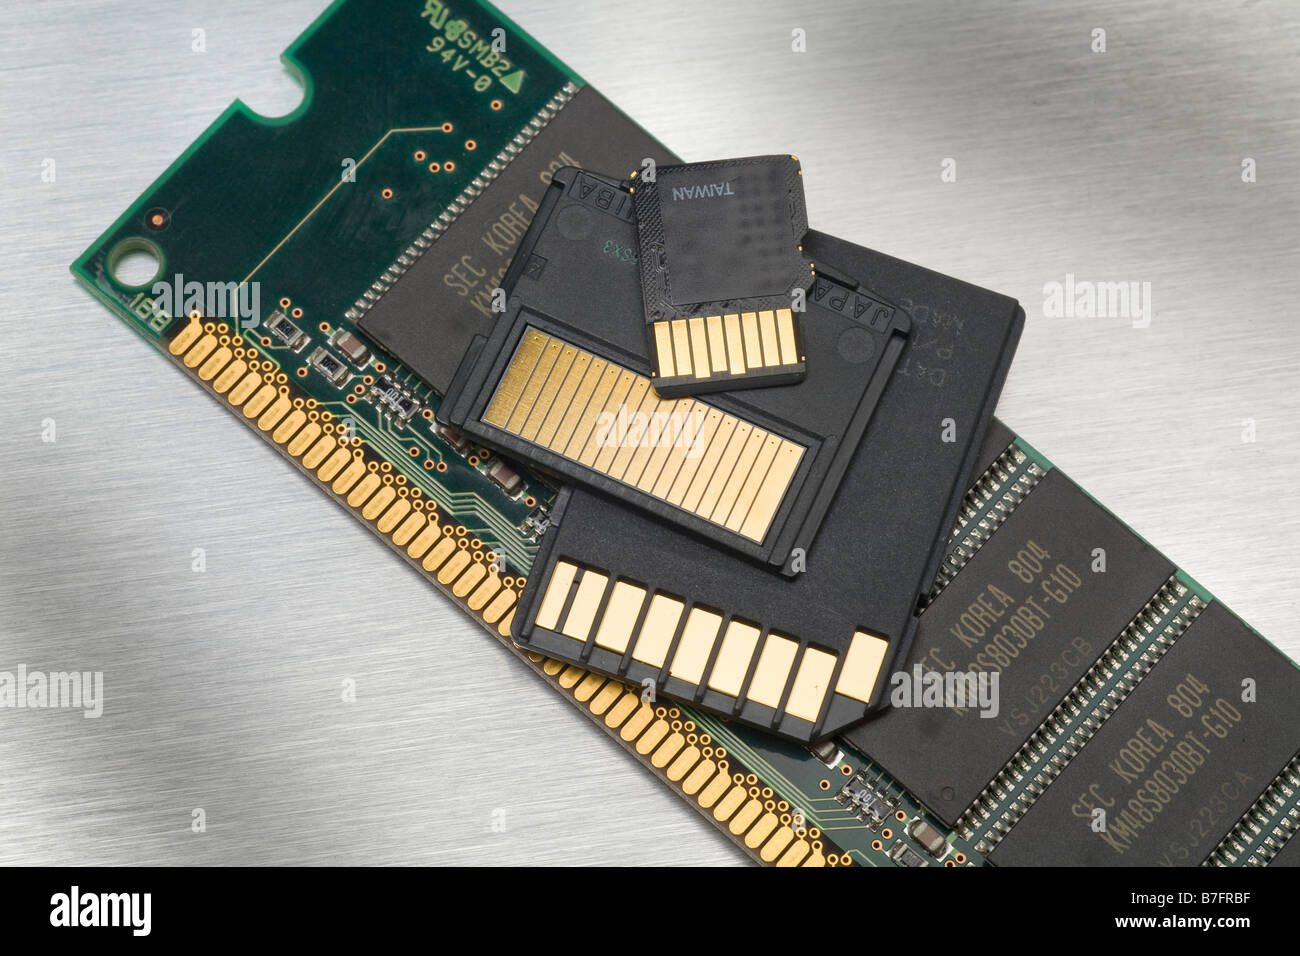 Dimm Stock Photos Images Alamy Ram Laptop Ddr2 2gb Pc2 6400 Asli Jepang Flash Memory Types Compared From Korea Taiwan Japan Image